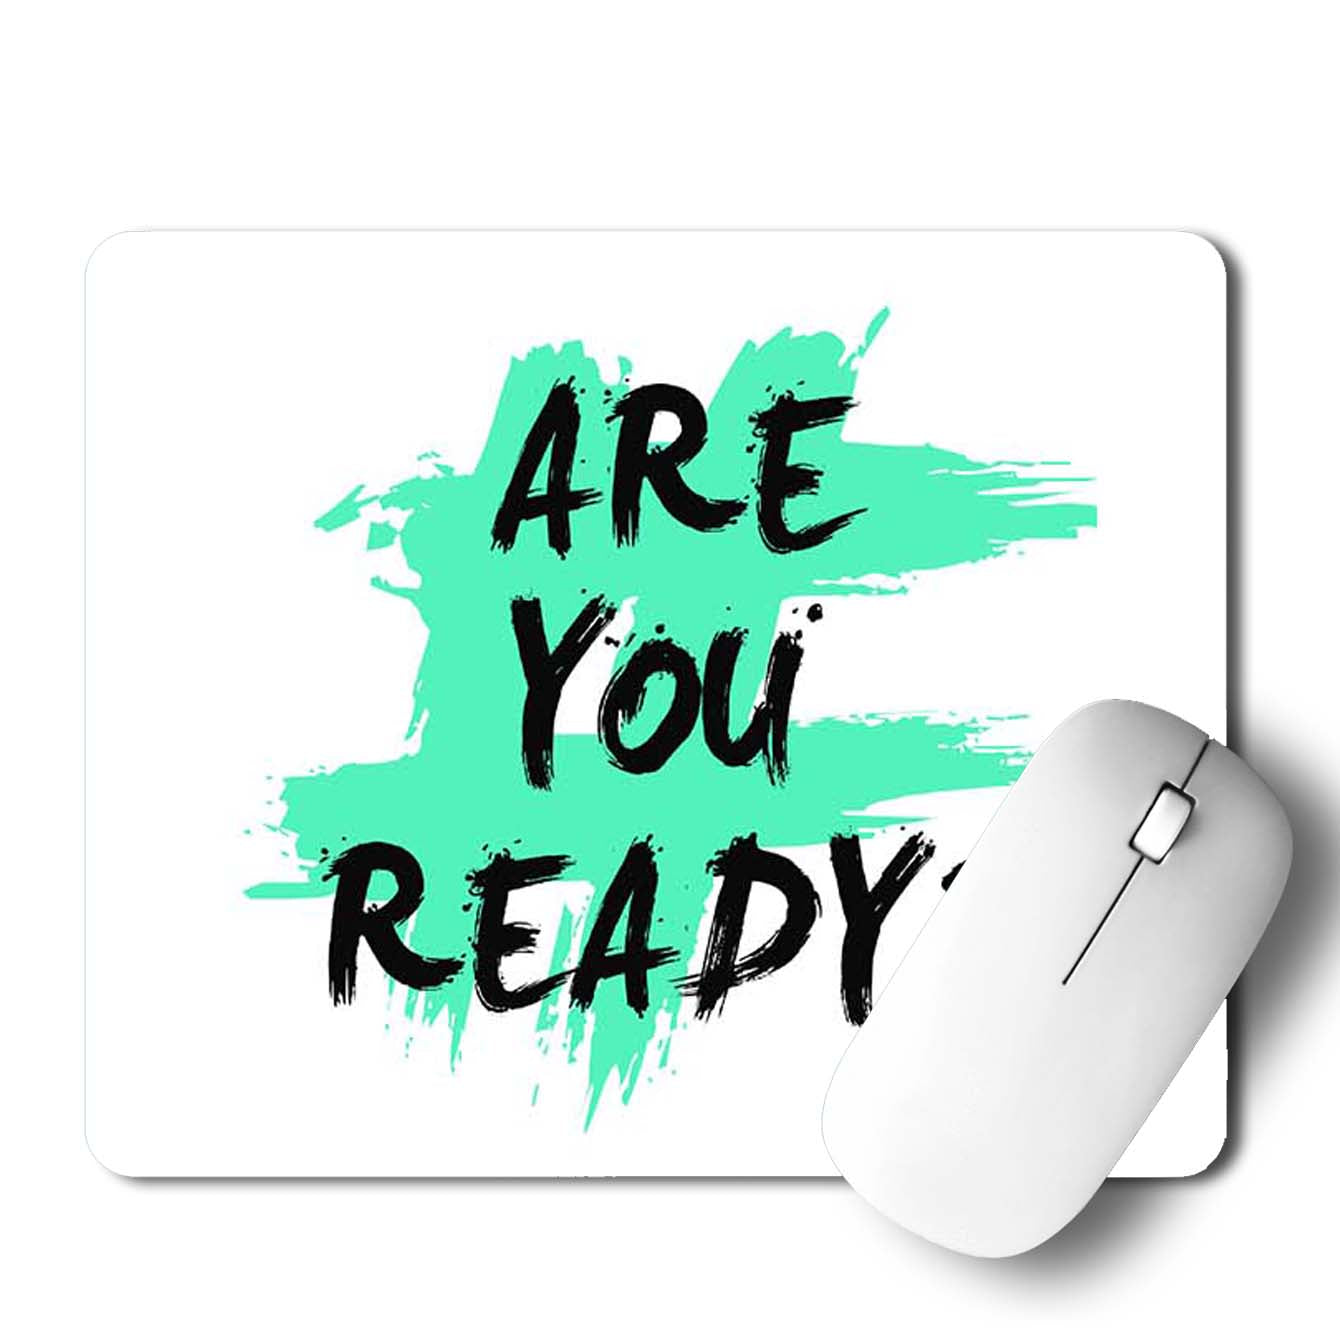 Buy AreYou Ready Motivational Mouse Pads Online